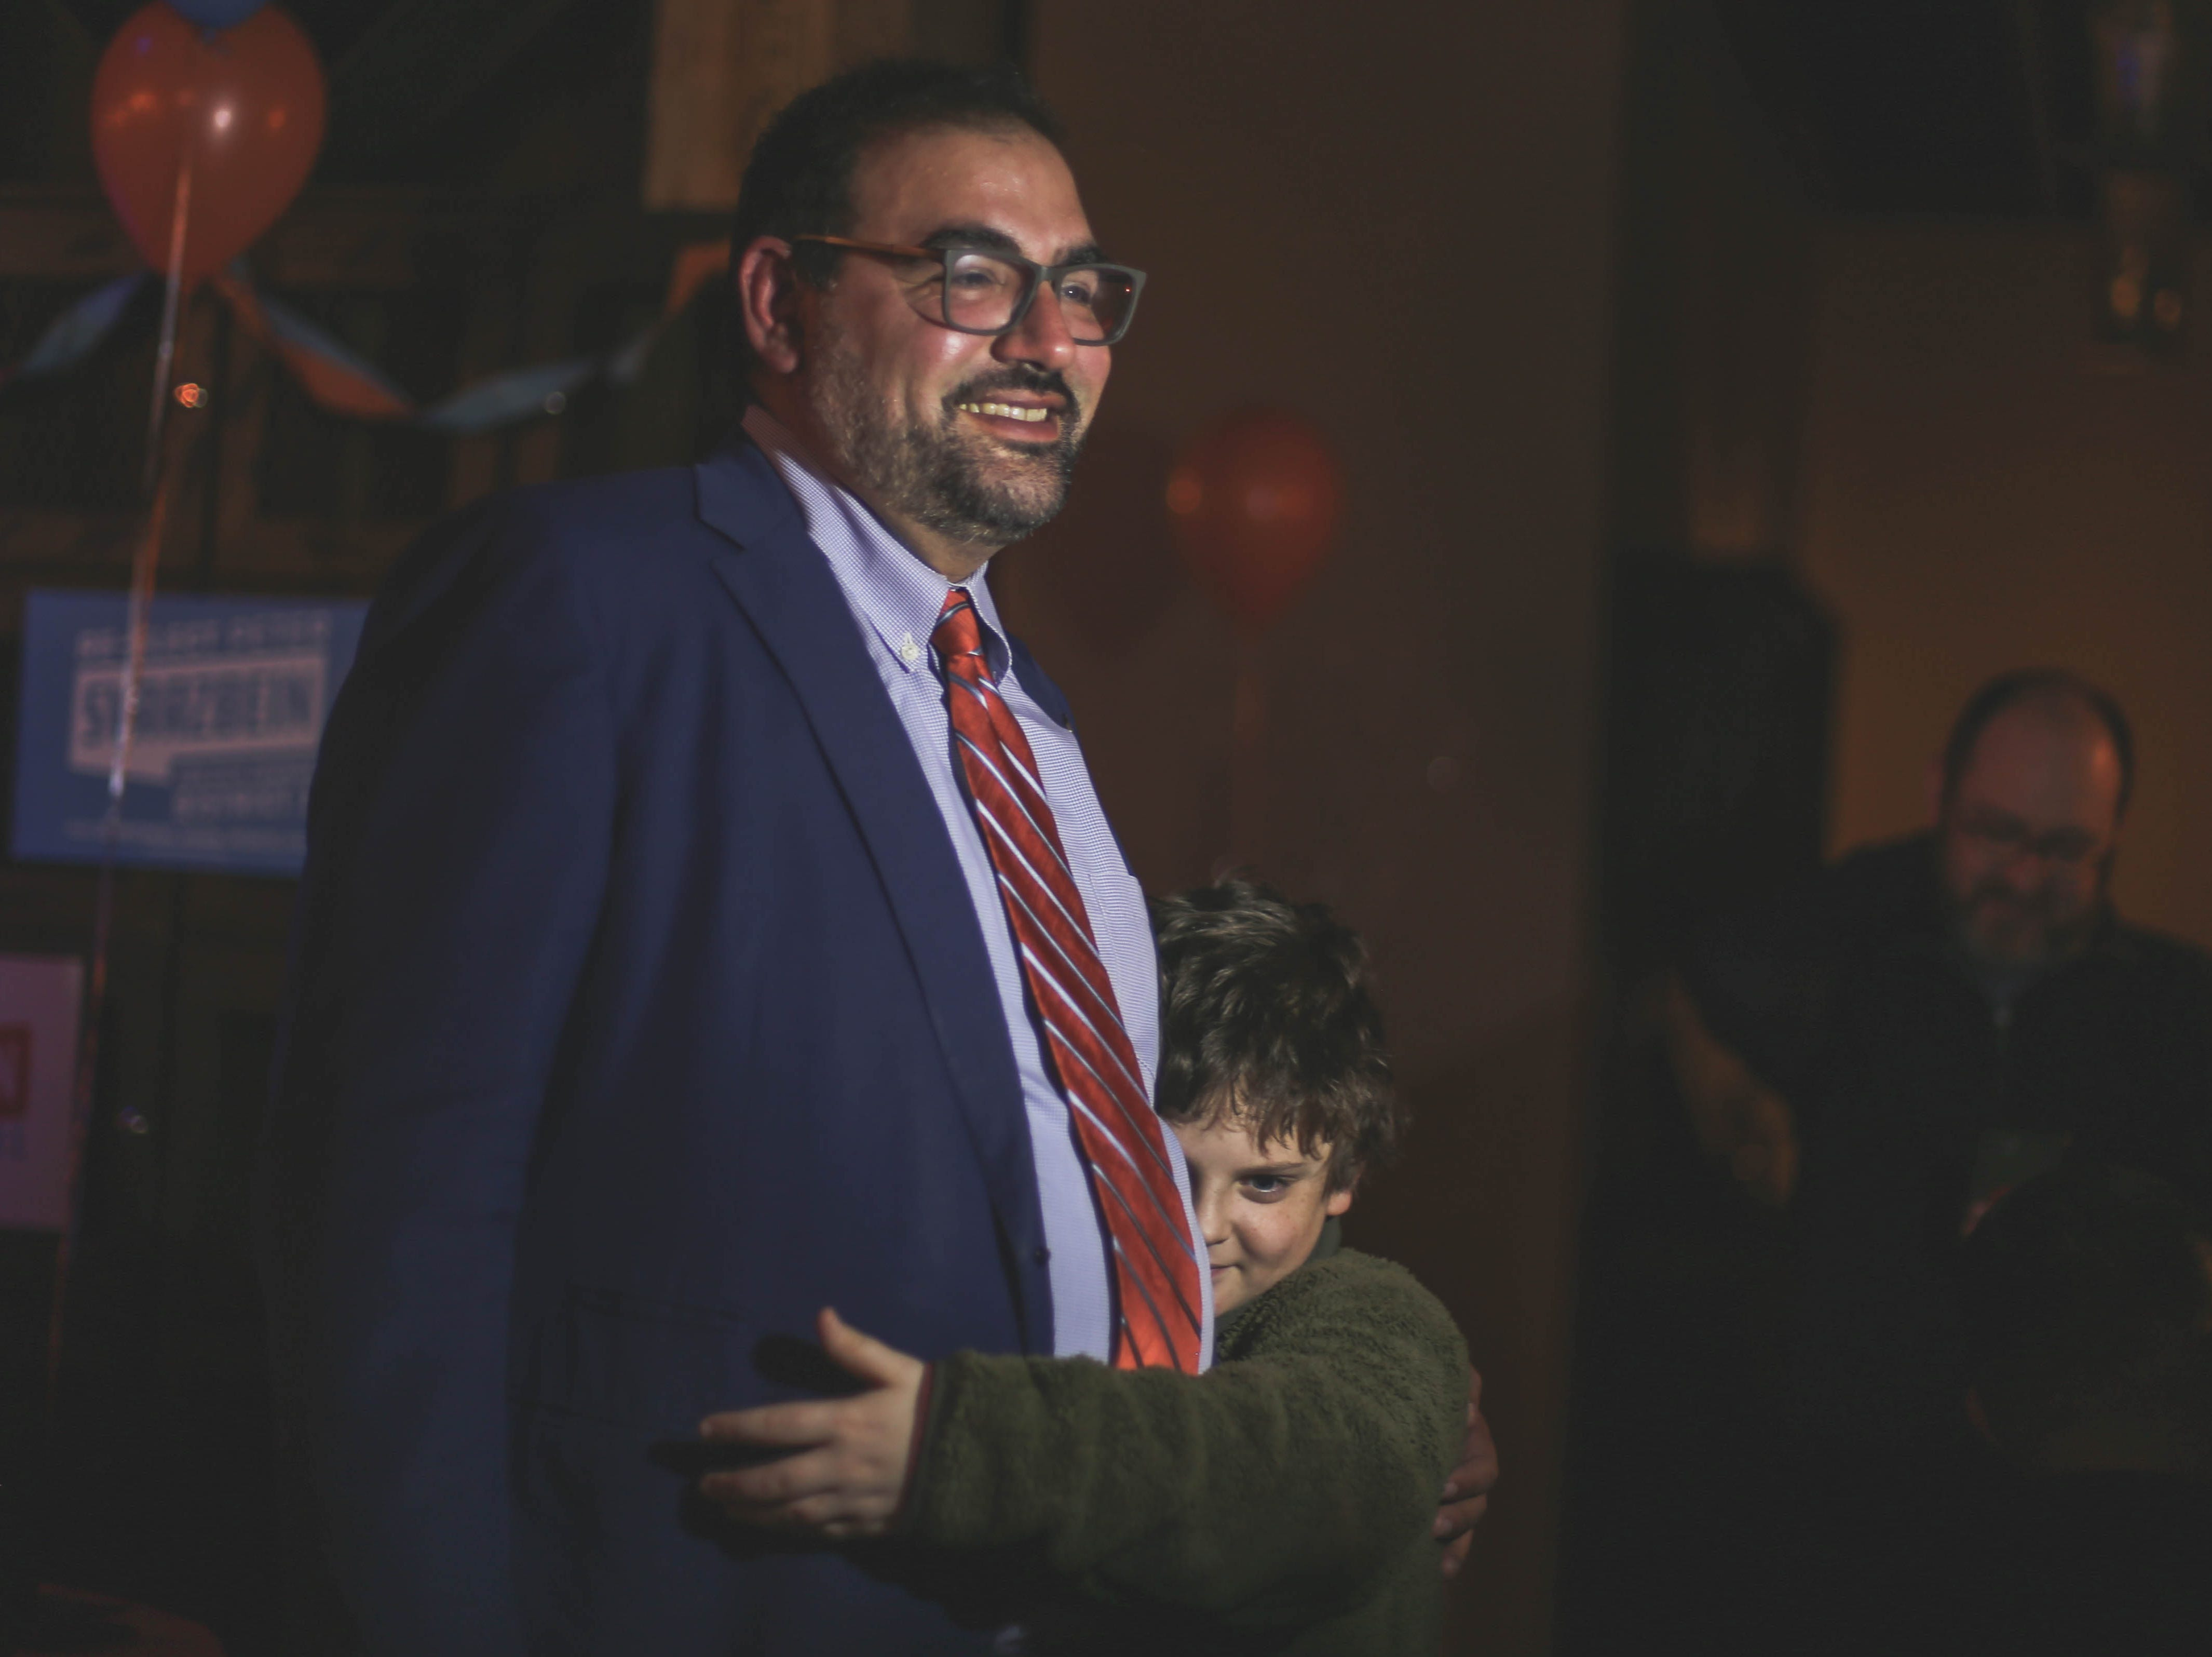 District 1 city Rep. Peter Svarzbein and family friend Kameron Scheiner celebrate his re-election Saturday, Dec. 15, 2018, at Holy Grail.